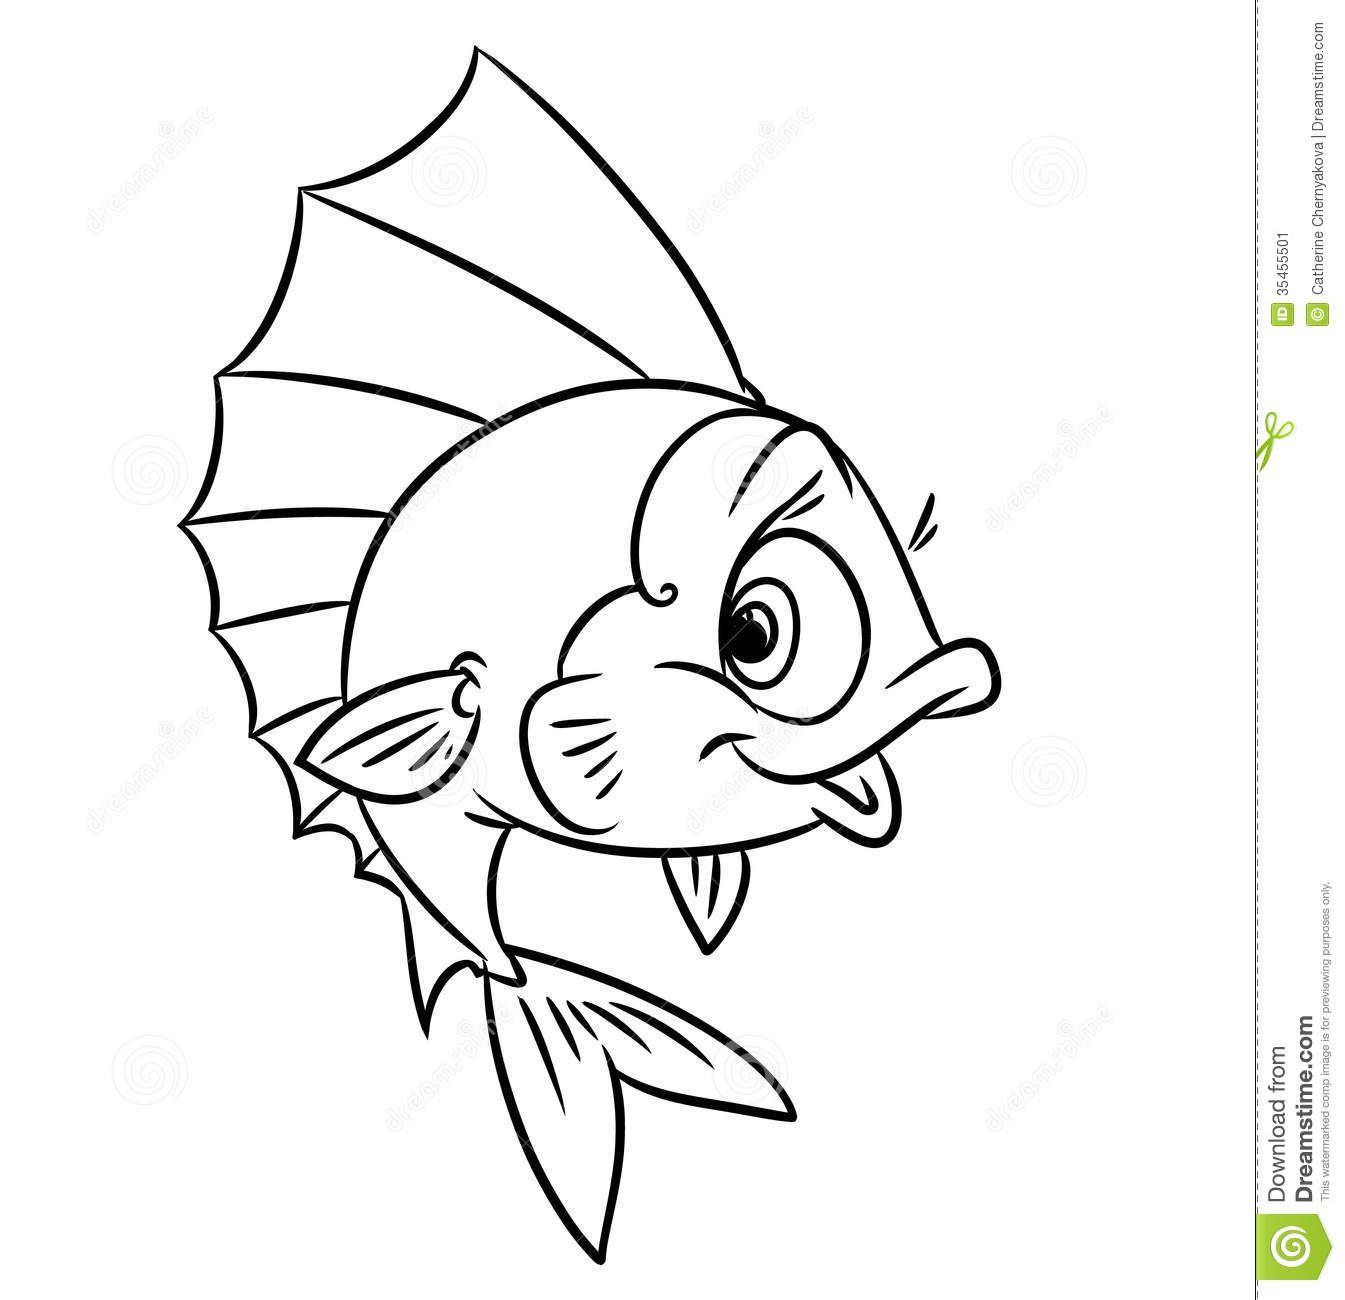 Printable coloring pages with fish - Stock Image Fish Coloring Pages Image 35455501